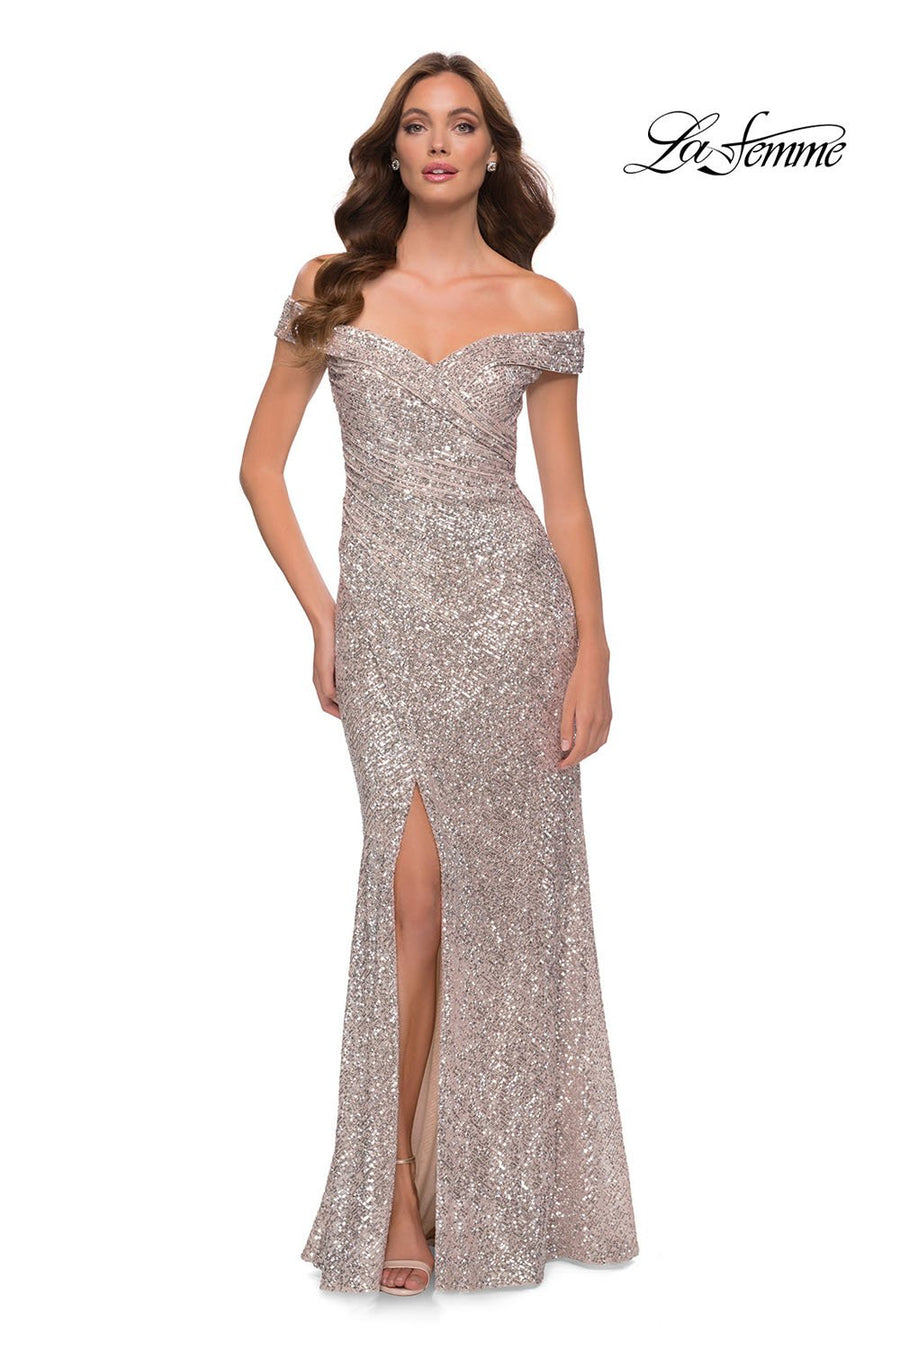 La Femme 29831 prom dress images.  La Femme 29831 is available in these colors: Black, Navy, Rose Gold, Silver, White.